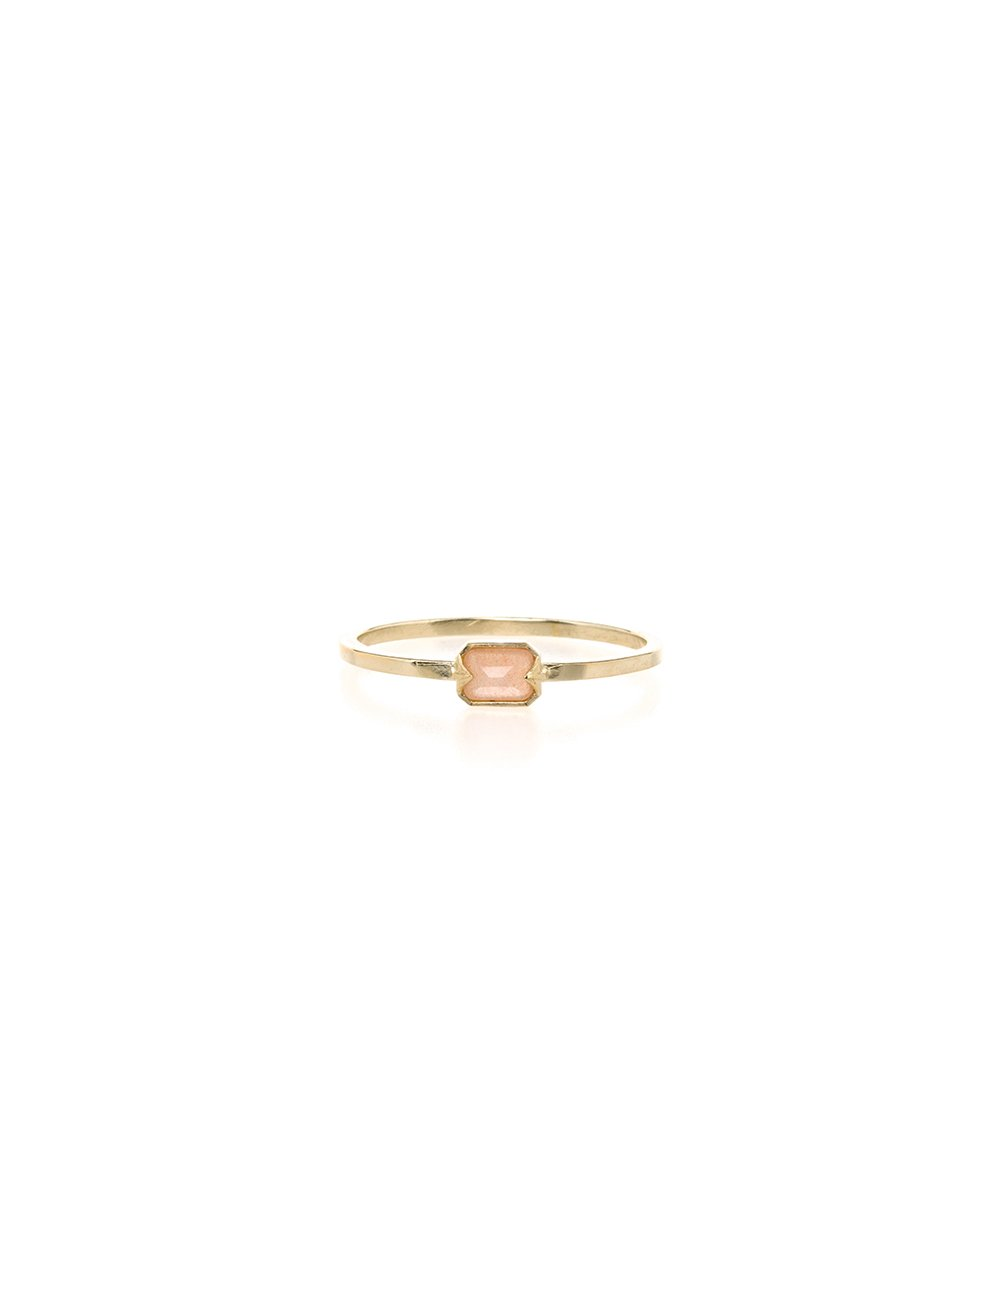 Far Out Ring- Peach Moonstone